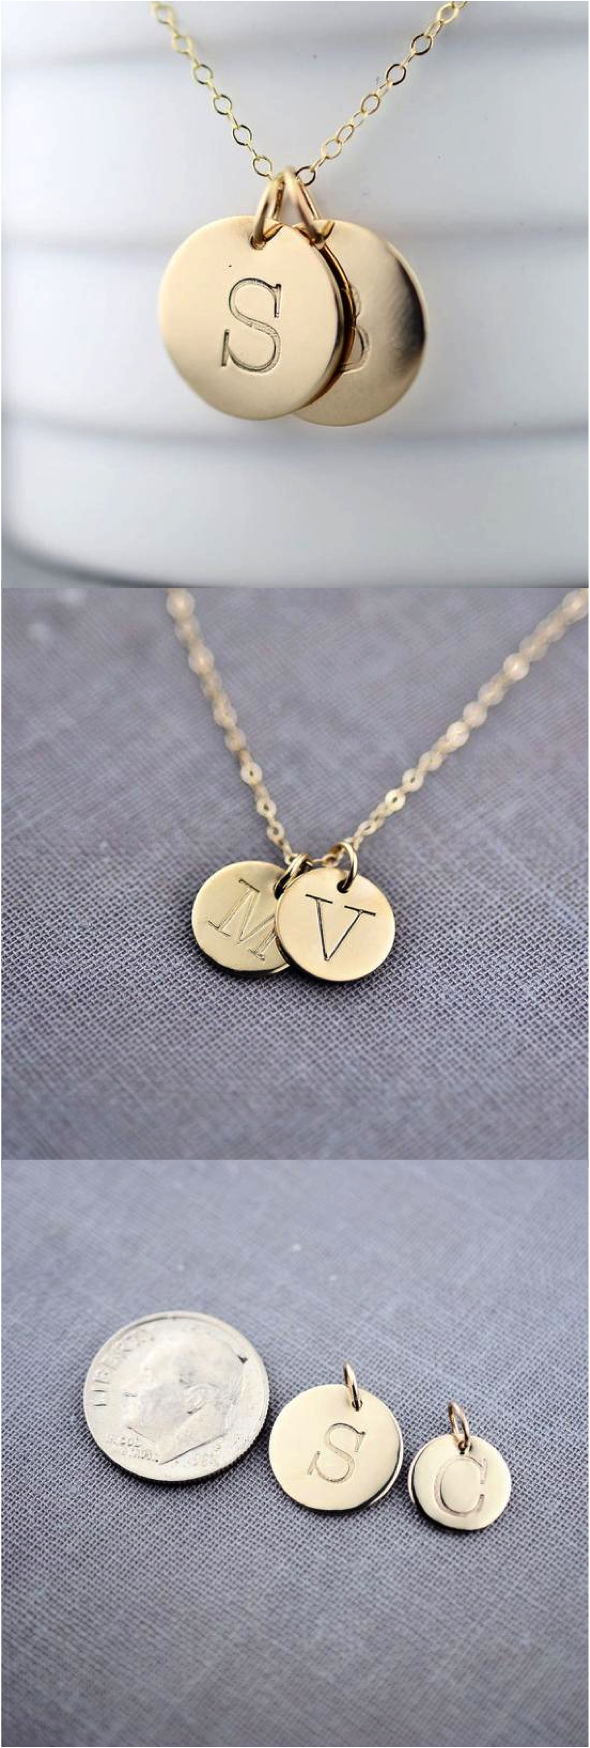 personalized twin solid gold initial necklace by lilyemmejewelry wear your favorite letter on a recycled solid gold pendant you may choose any capital